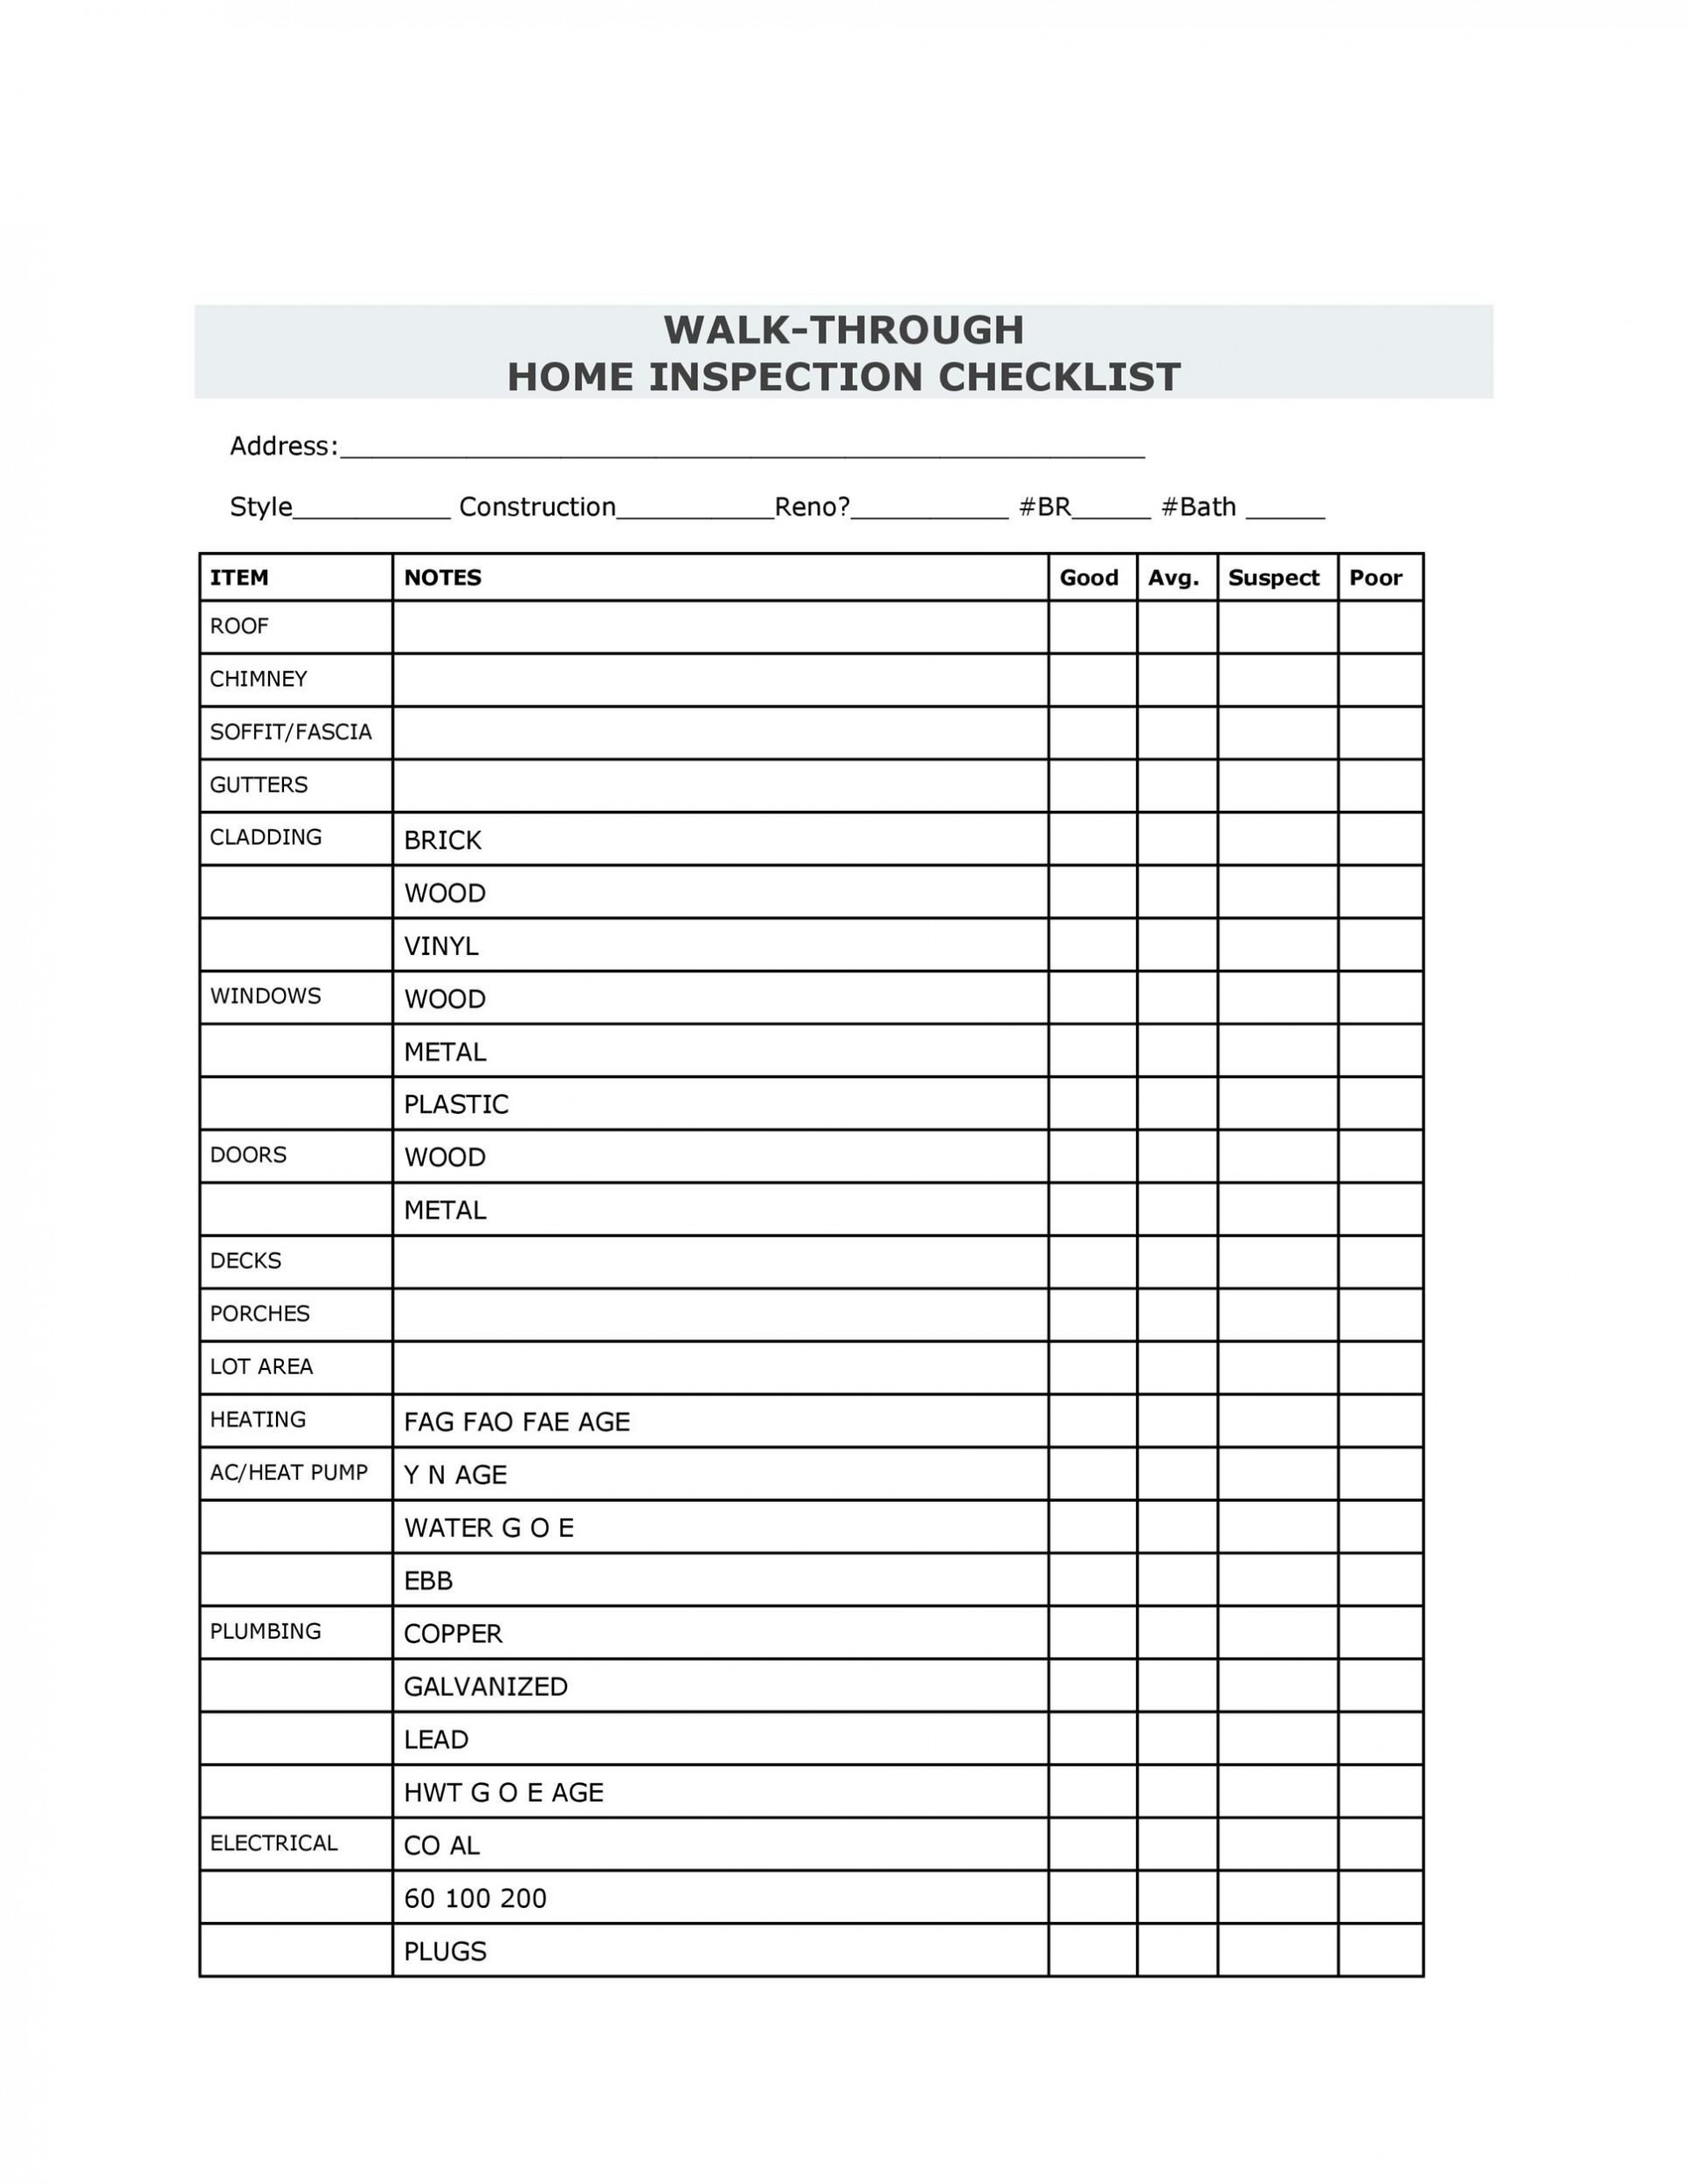 005 Unforgettable Home Inspection Checklist Template Image  New Form Free1920